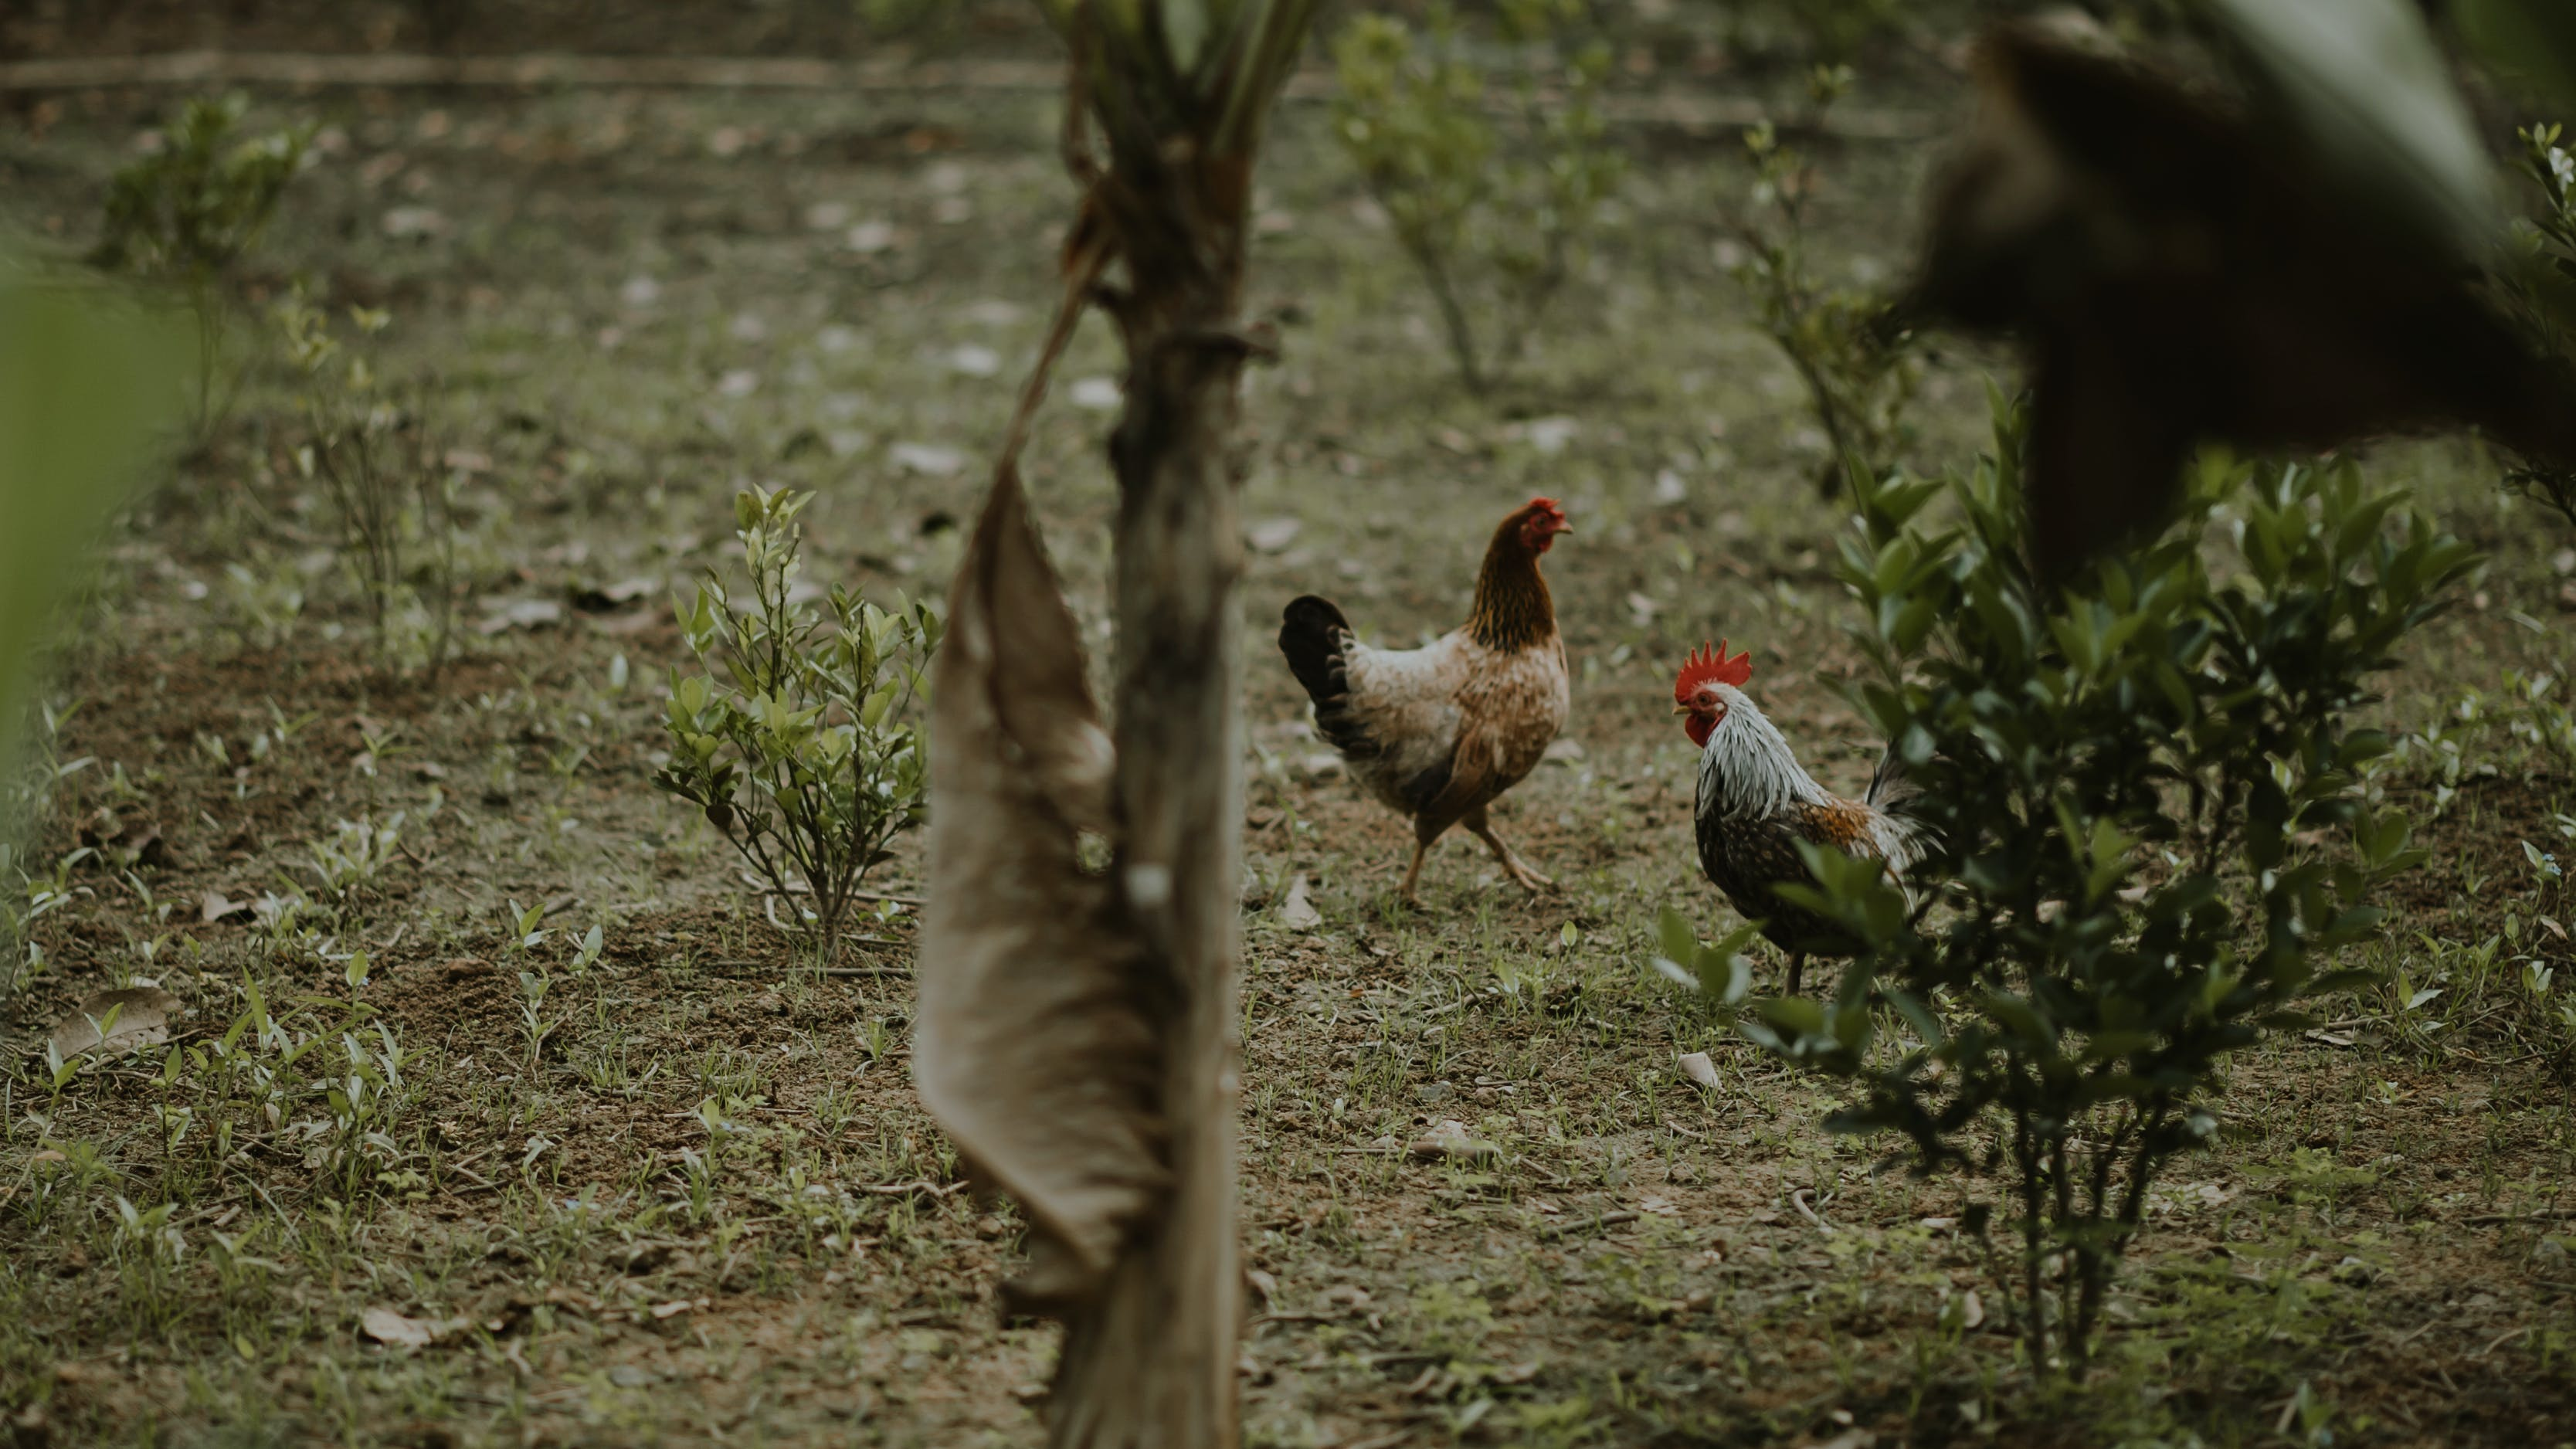 Two Brown Hen and White Rooster Standing Near Green Plants